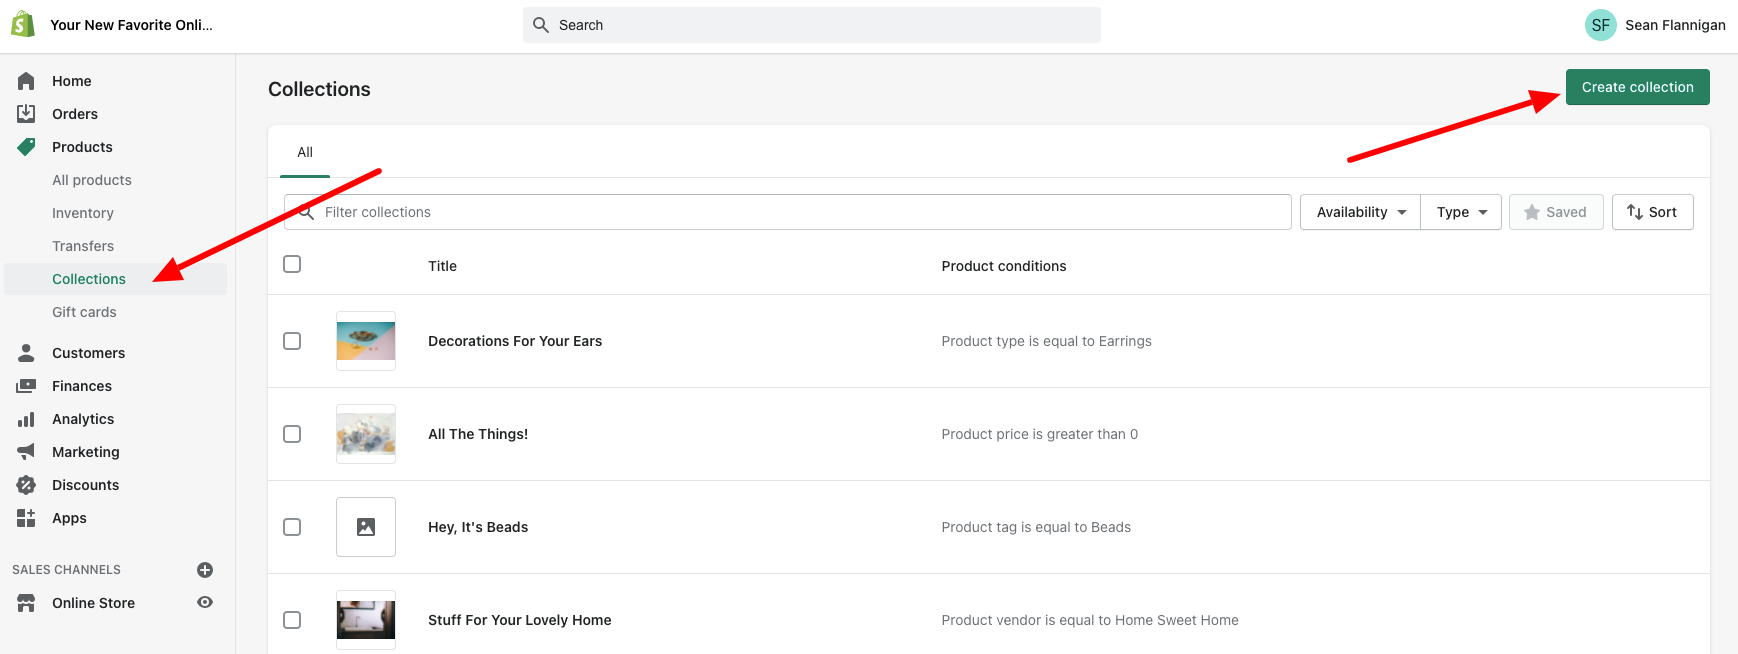 shopify dashboard product collections create collection